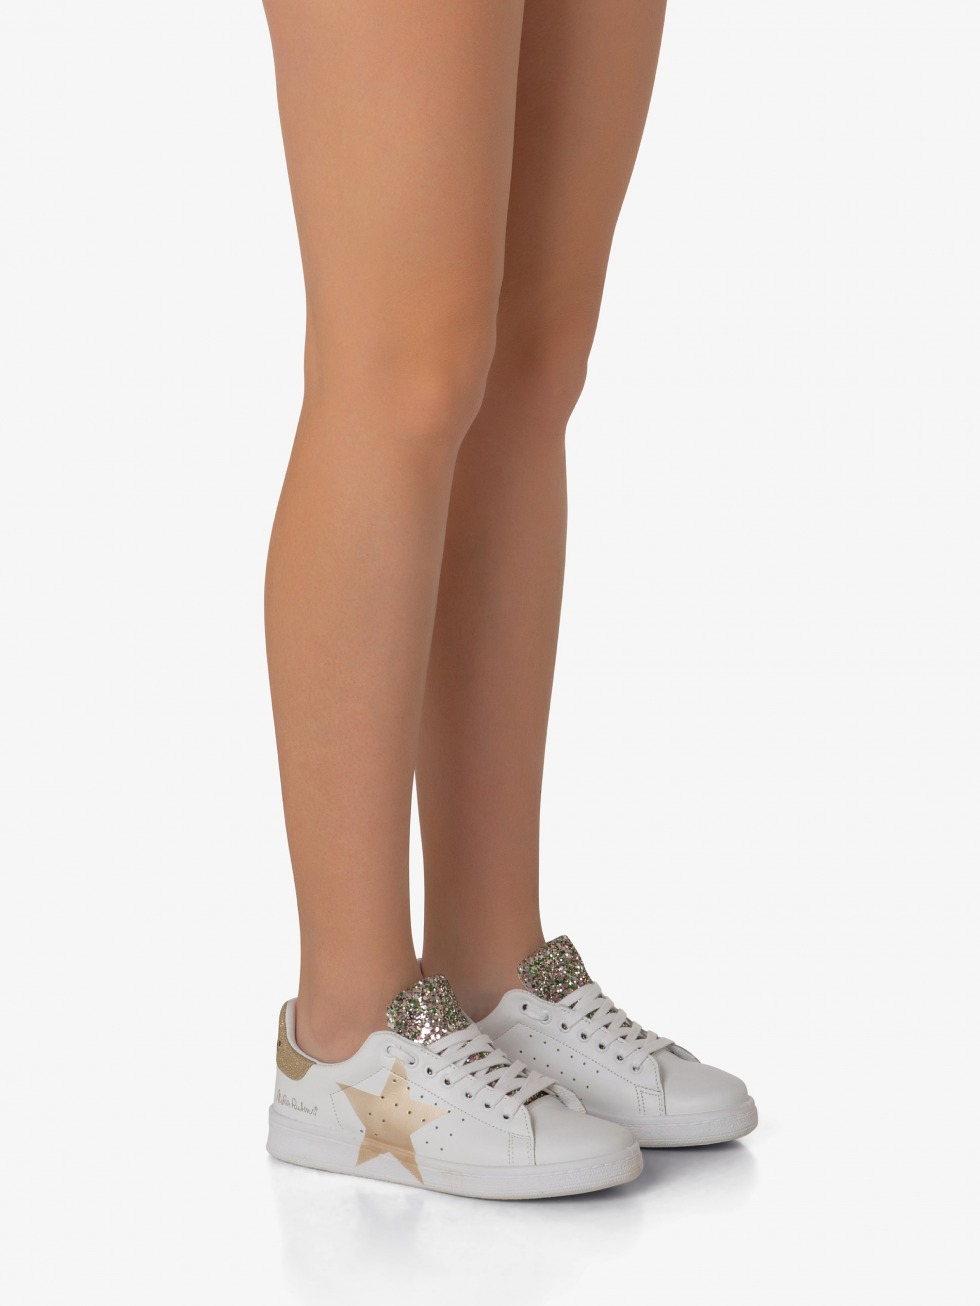 Daiquiri Sneakers - Shiny Gold Star